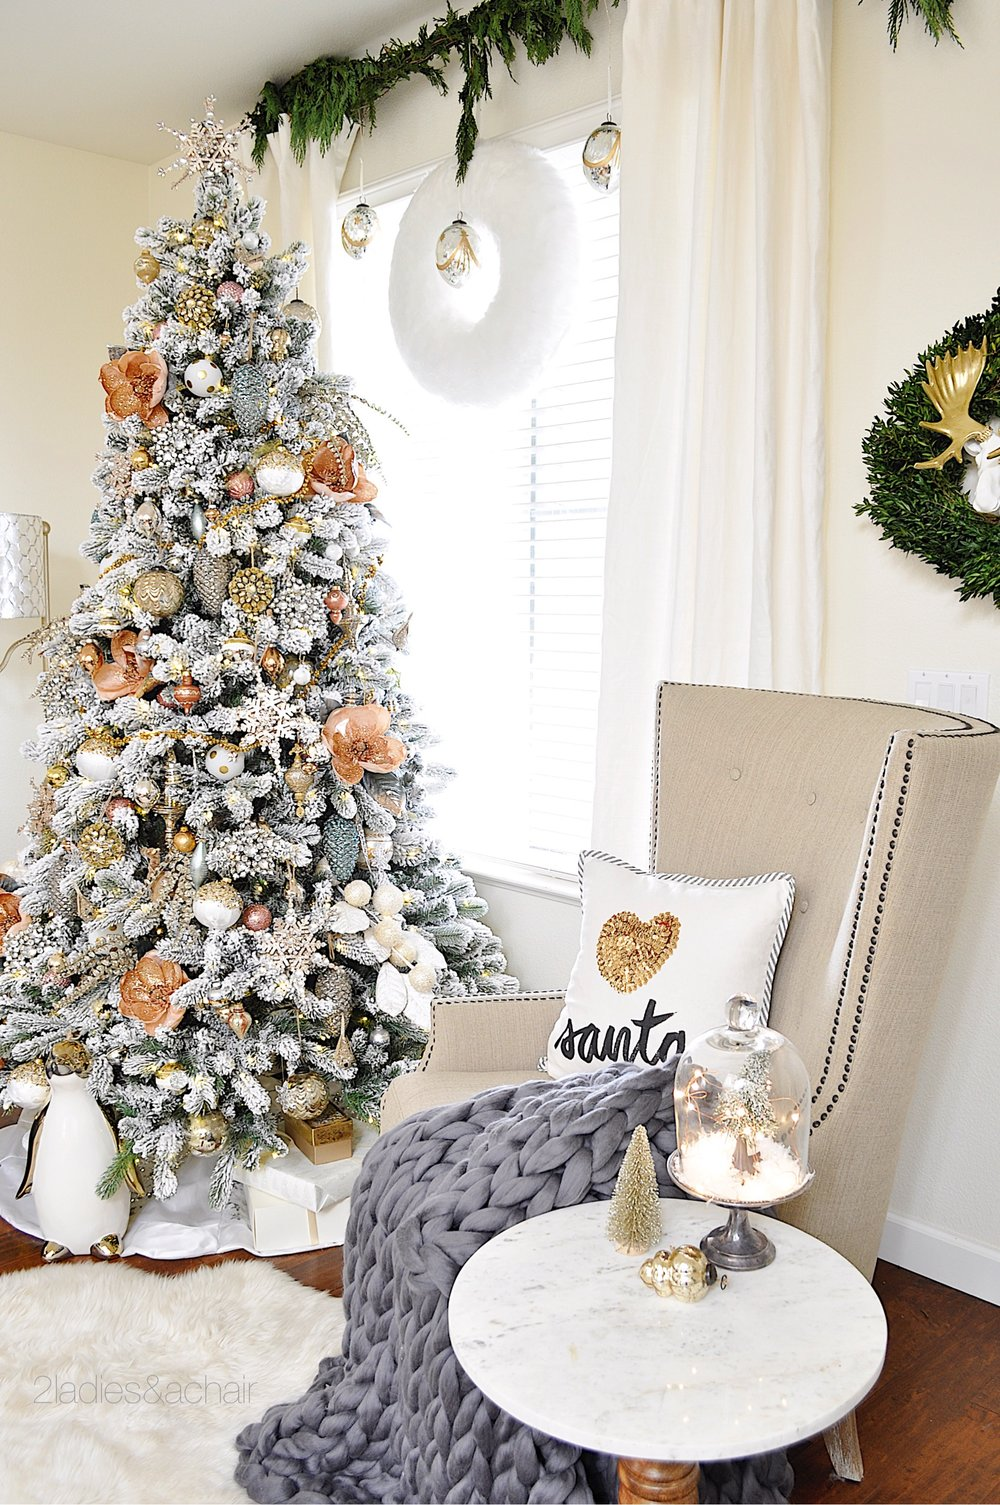 Christmas Home Decorating Ideas For A Beautiful Holiday 2 Ladies